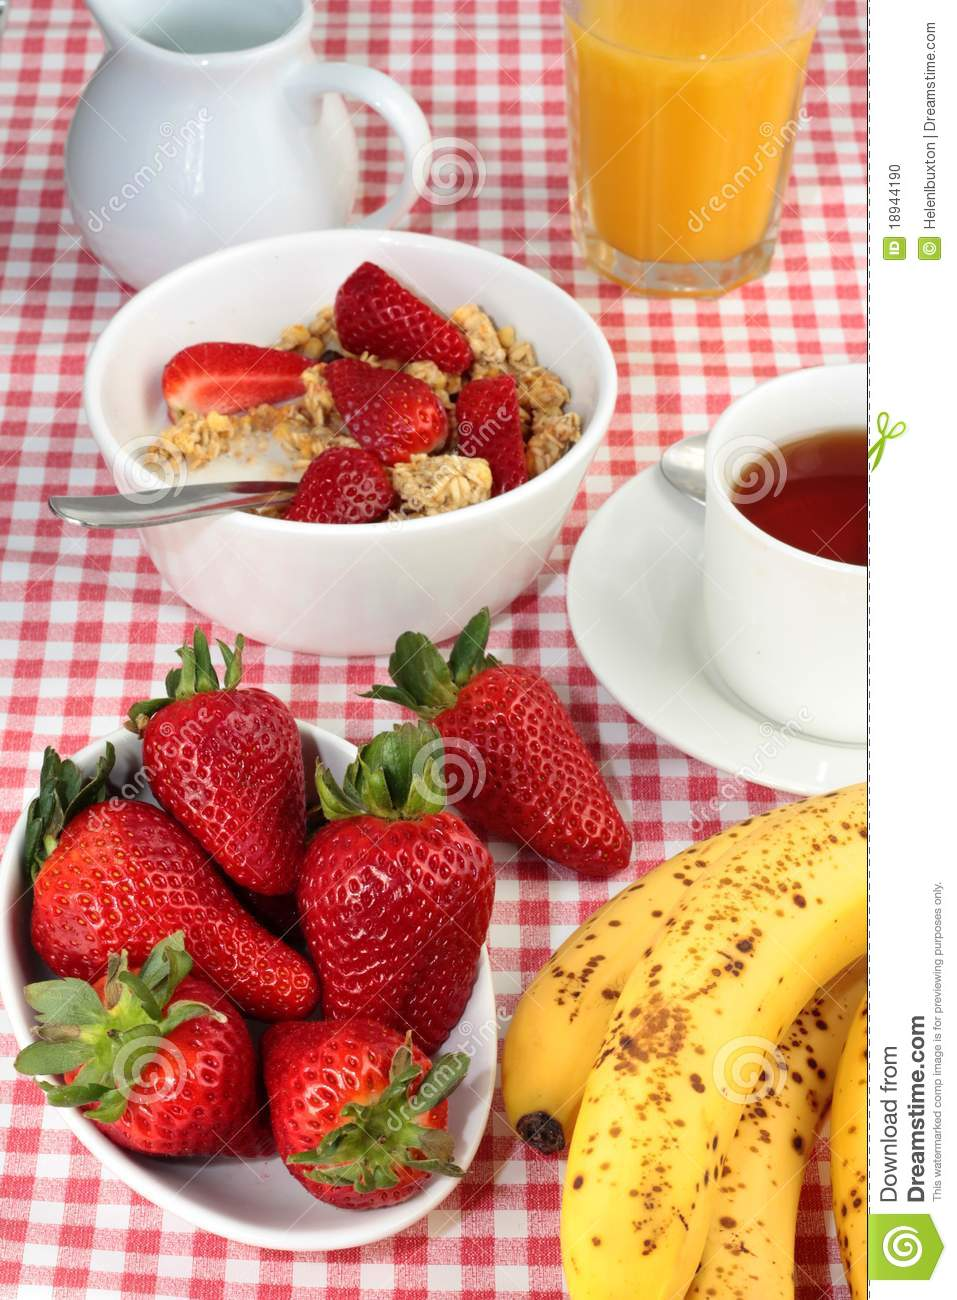 Healthy breakfast with cereal and fresh fruit